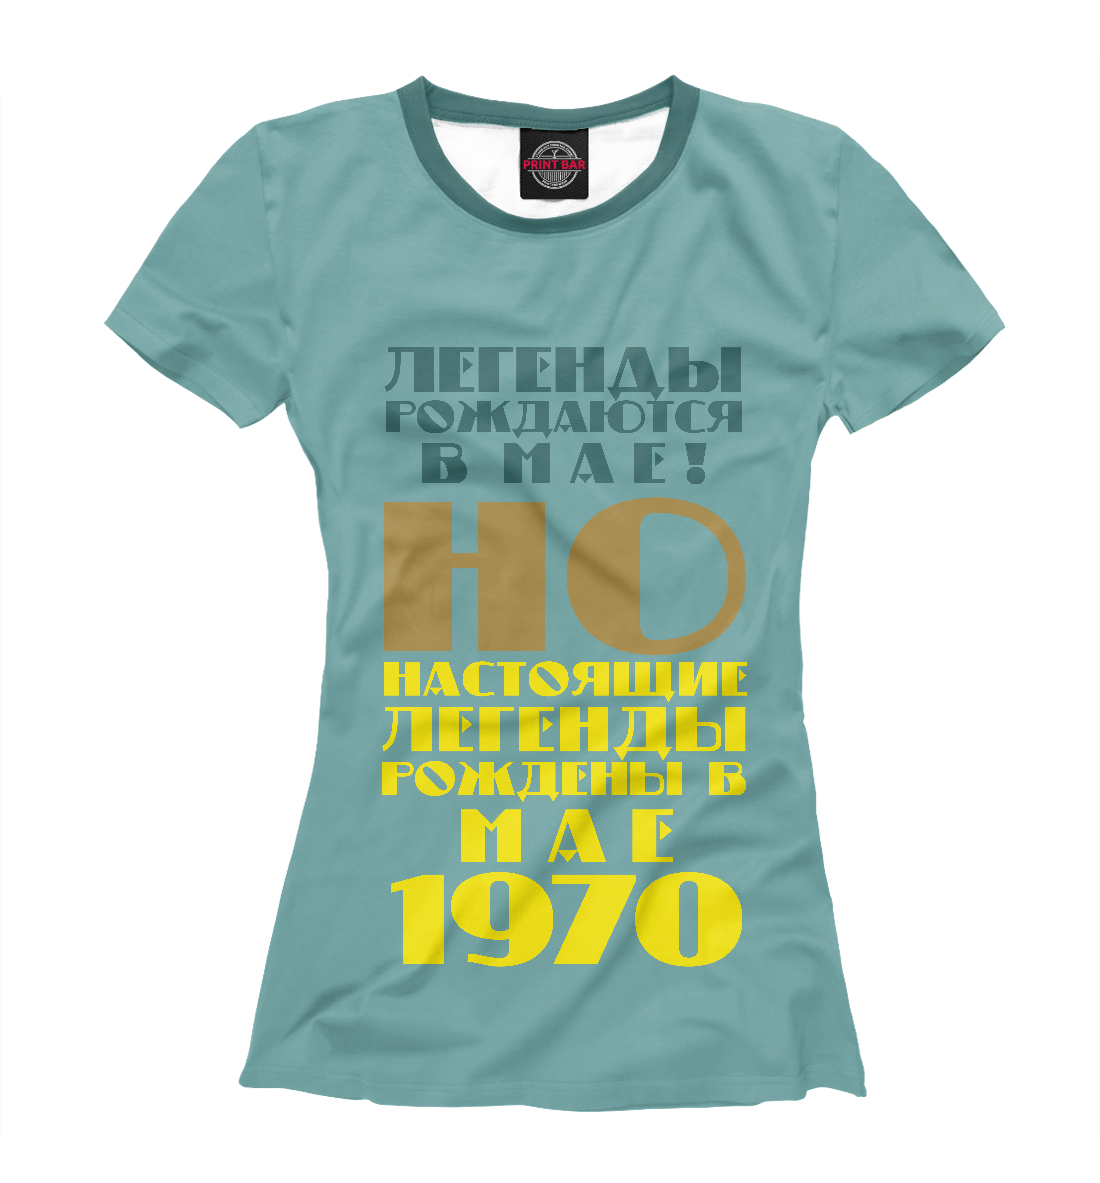 Vogue Womens T-Shirt Quote Slogan Tumblr Hipster Top Tee